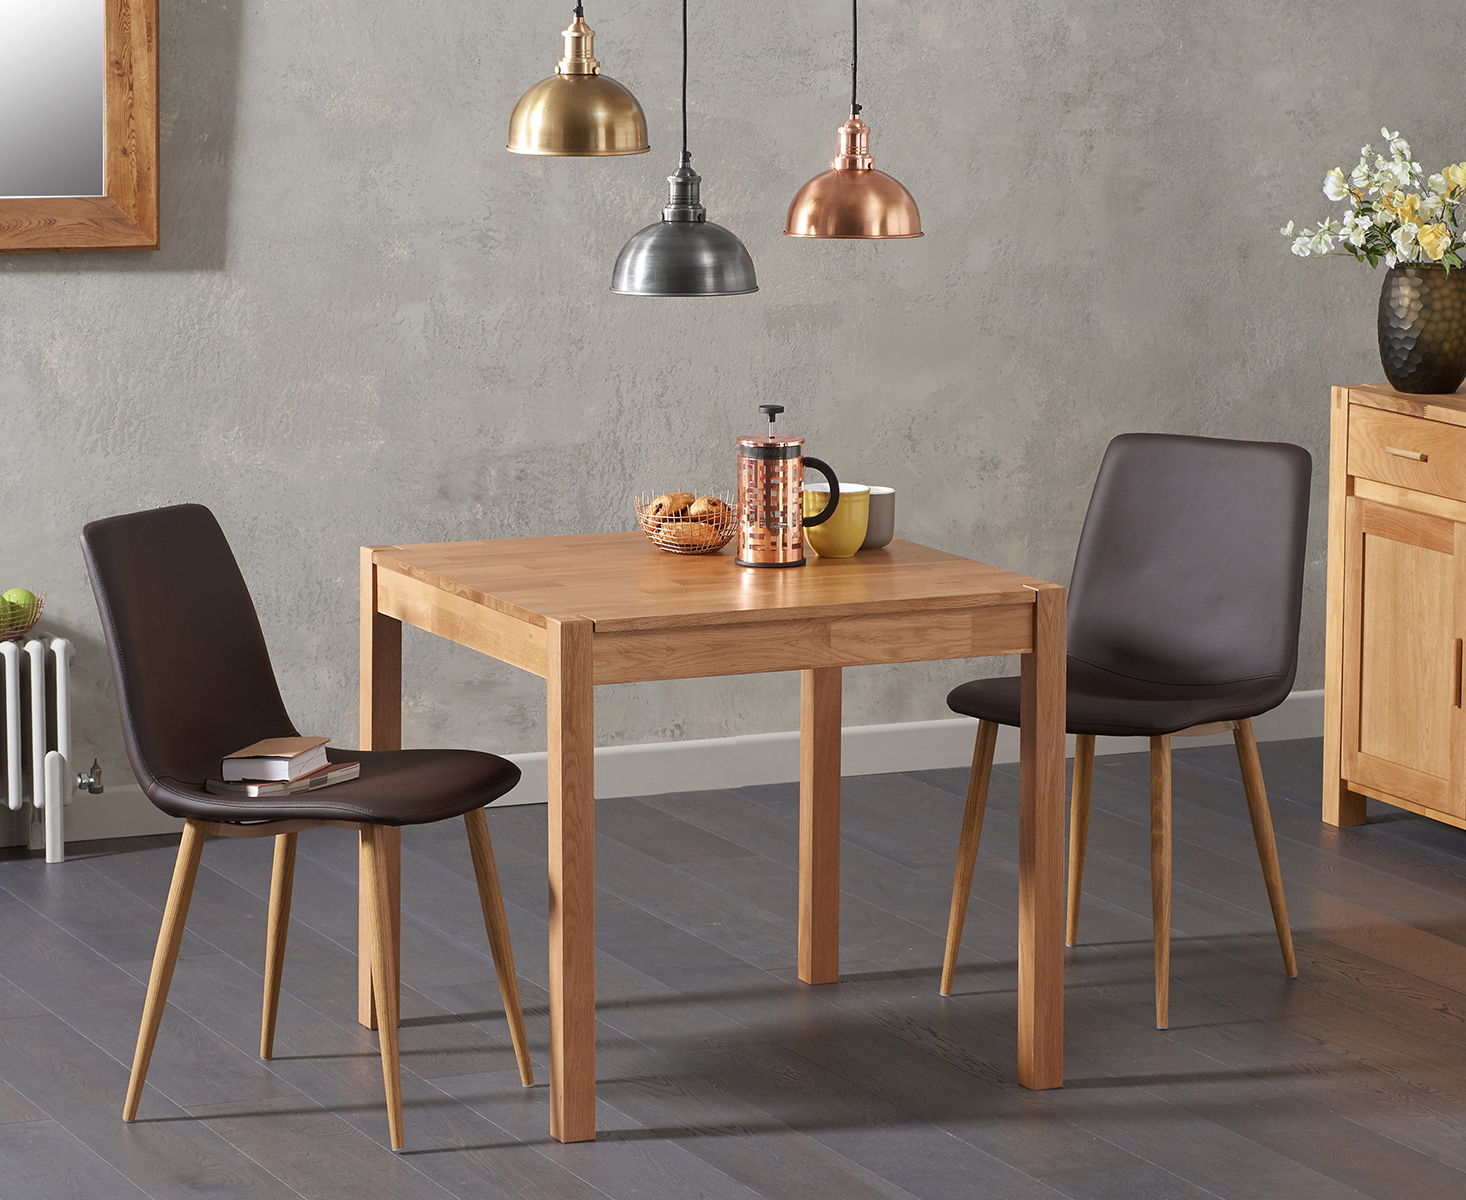 985edd6924c5 The Oxford 80cm Solid Oak Dining Table with Helsinki Faux Leather Chairs  blends design and durability, with a solid oak construction, finger-jointed  design ...